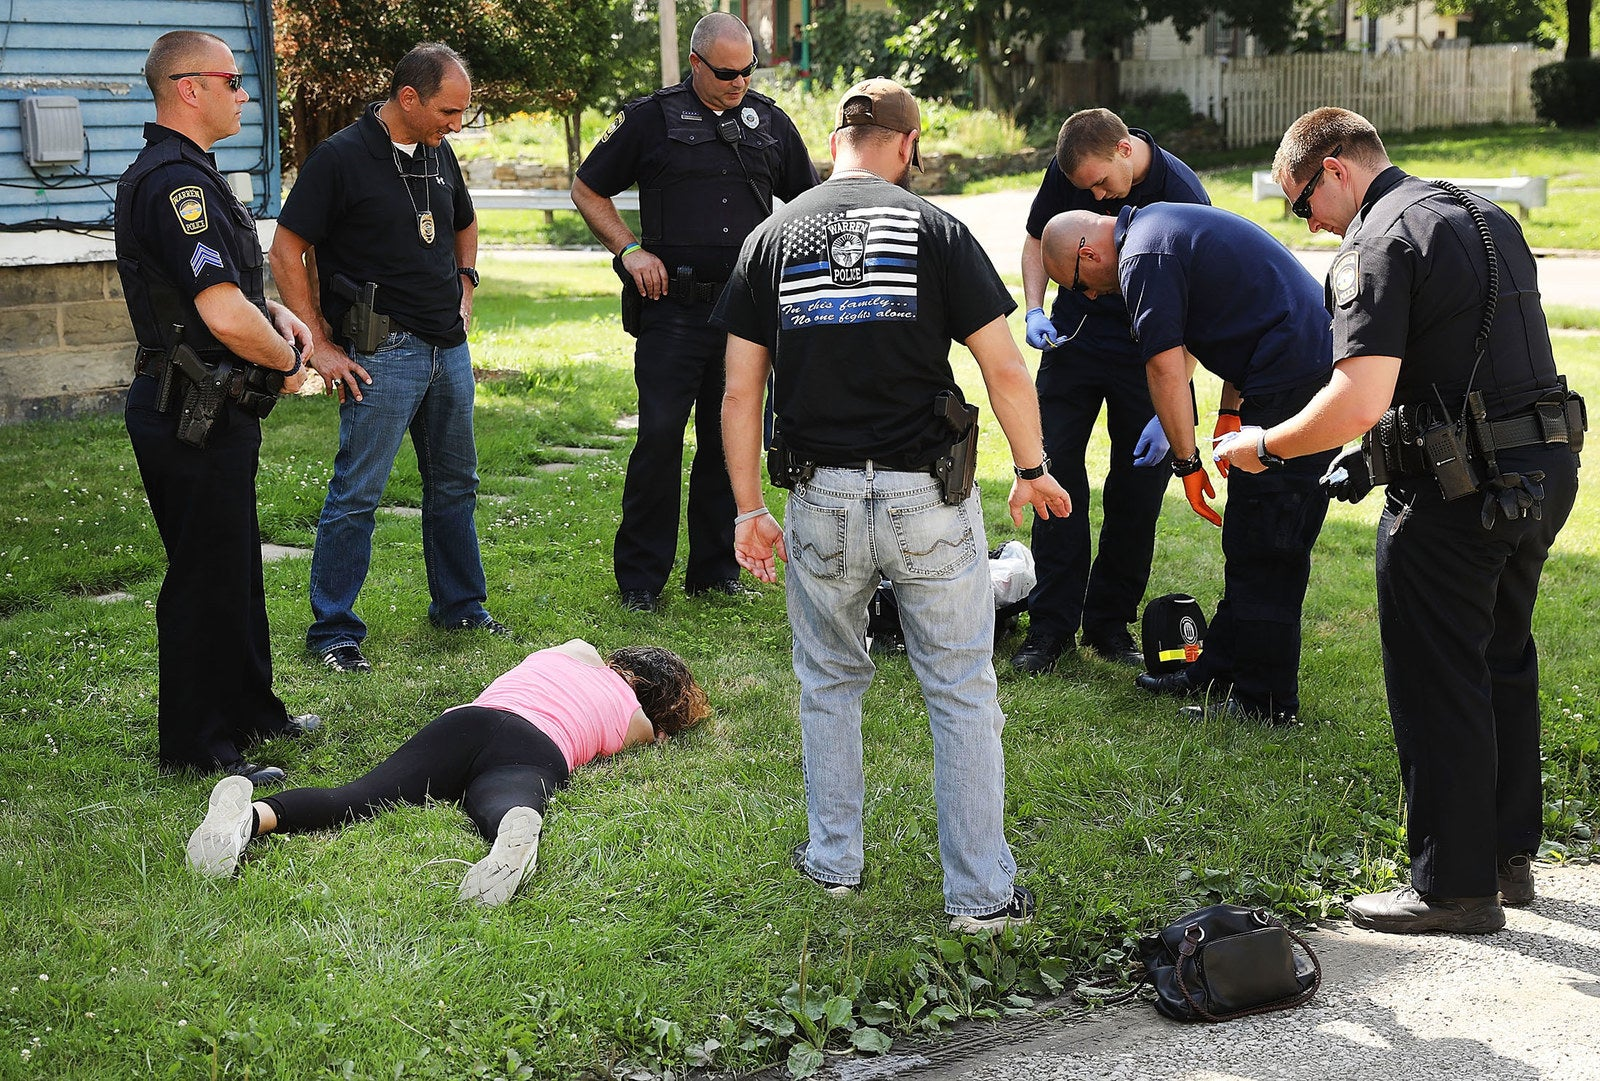 Medical workers and police treat a woman who has overdosed on heroin on July 14 in Warren, Ohio.